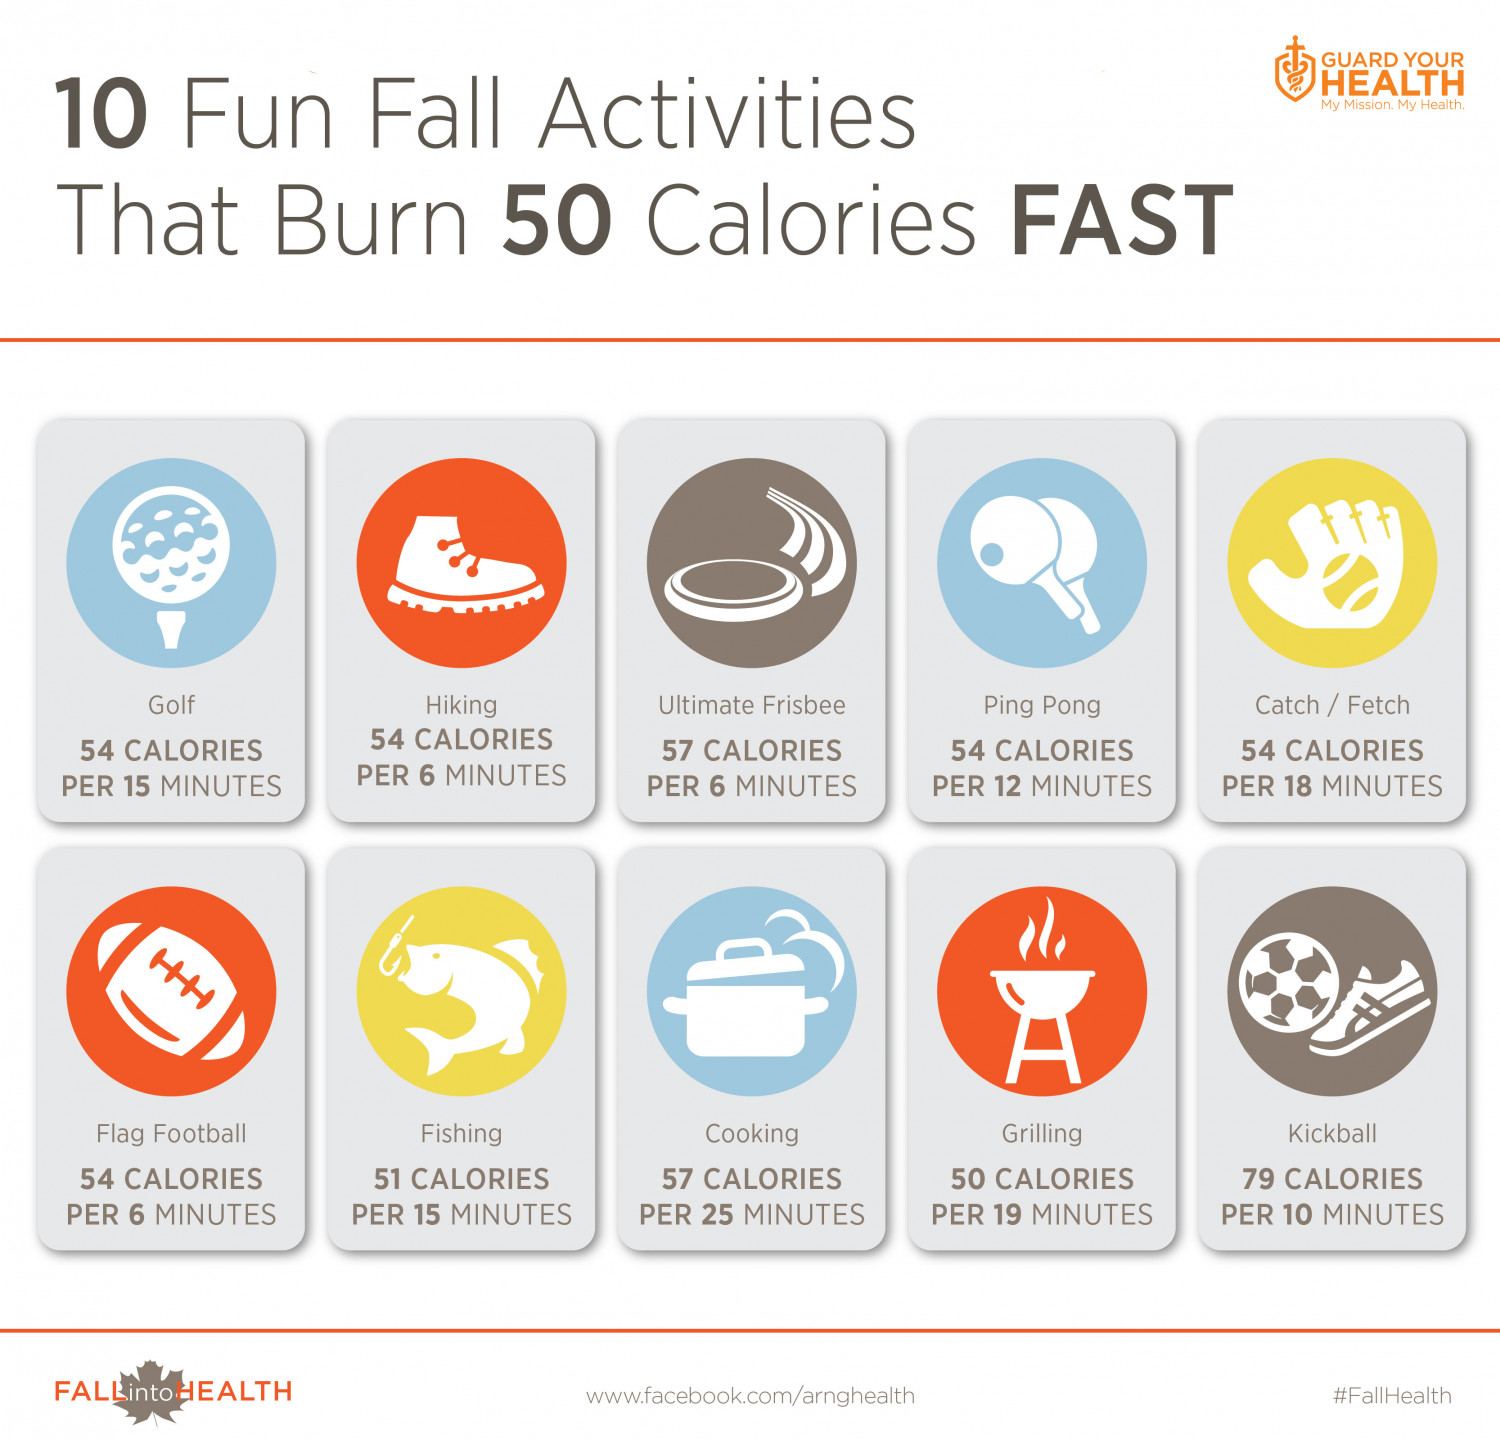 10 Fun Fall Activities That Burn 50 Calories FAST Infographic